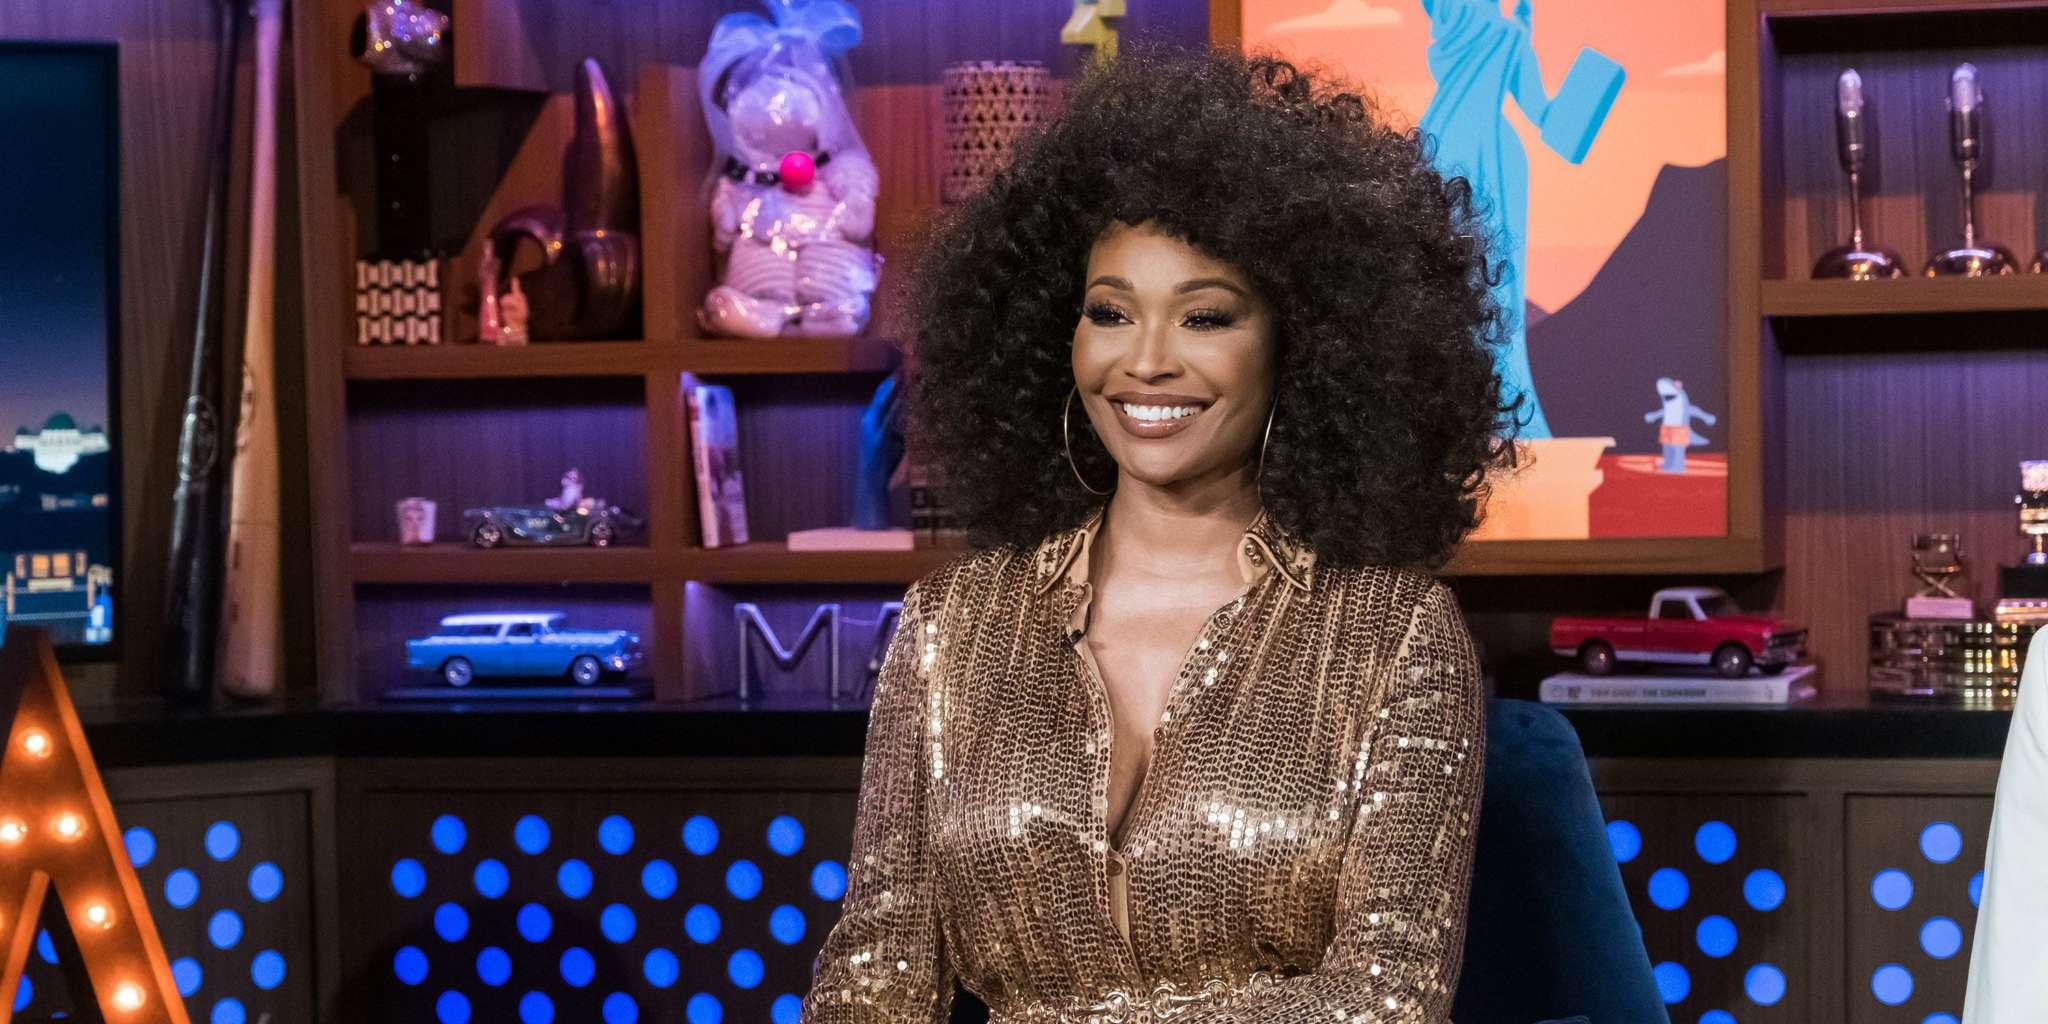 Cynthia Bailey Impresses Fans With A Video: 'People Standing Together As One'